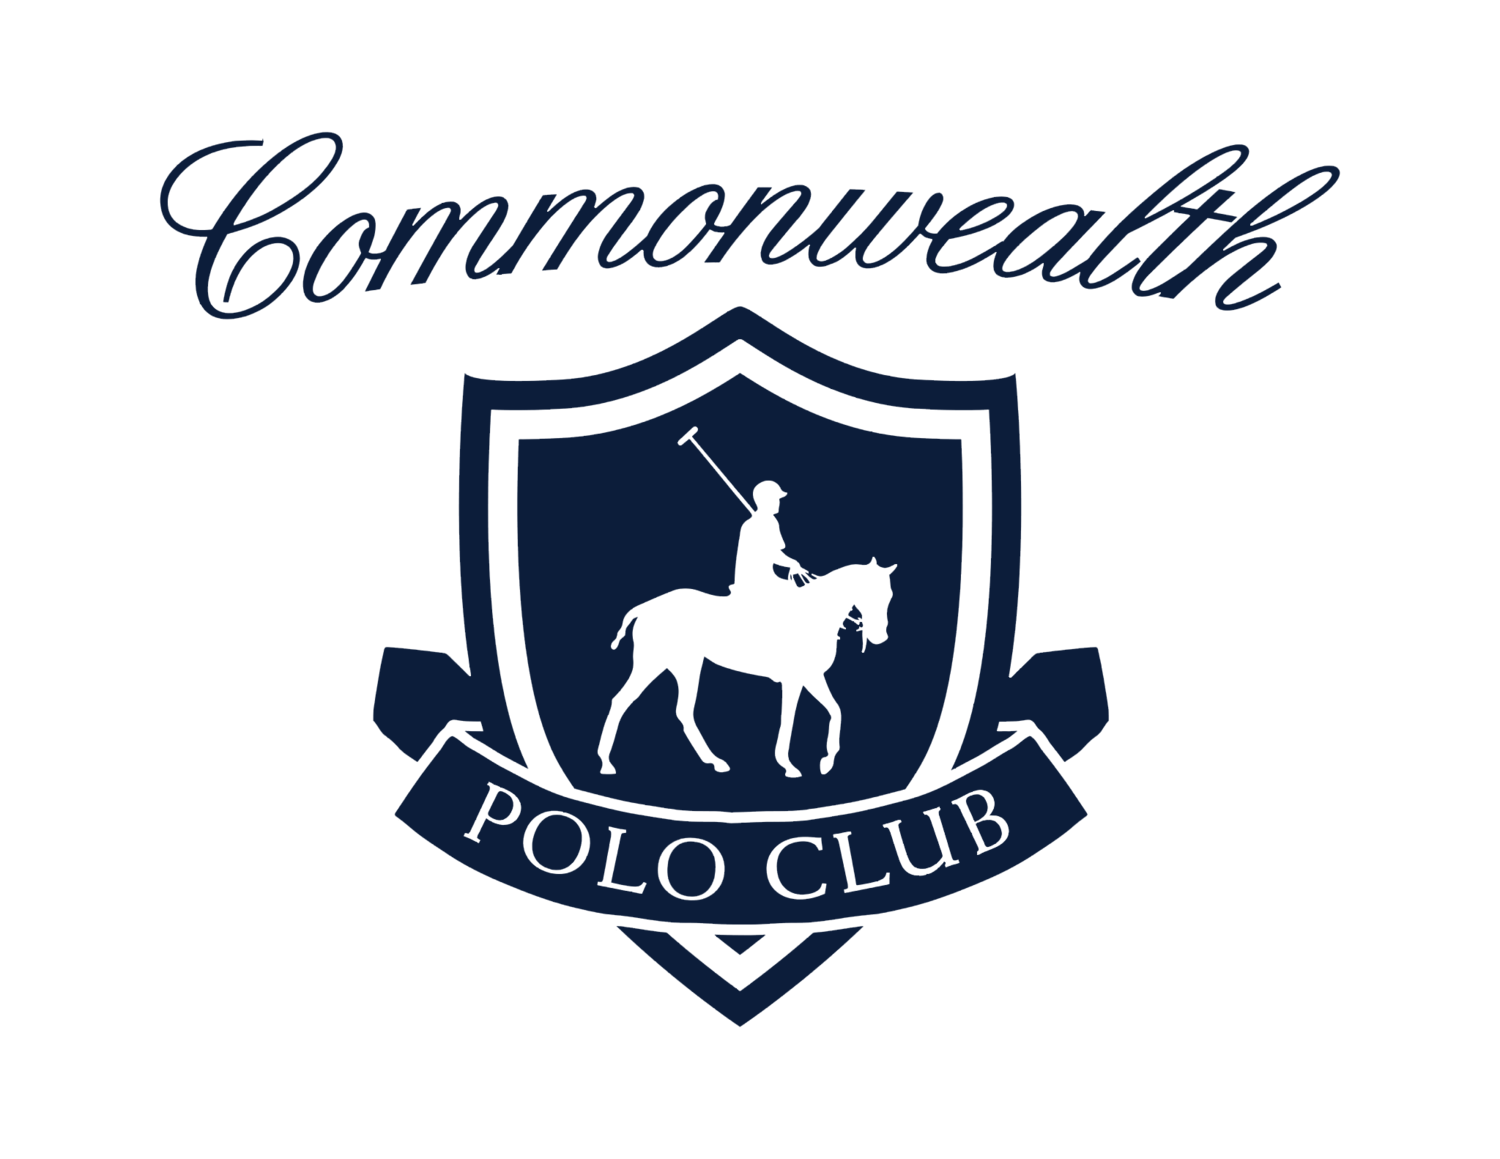 Commonwealth Polo Club